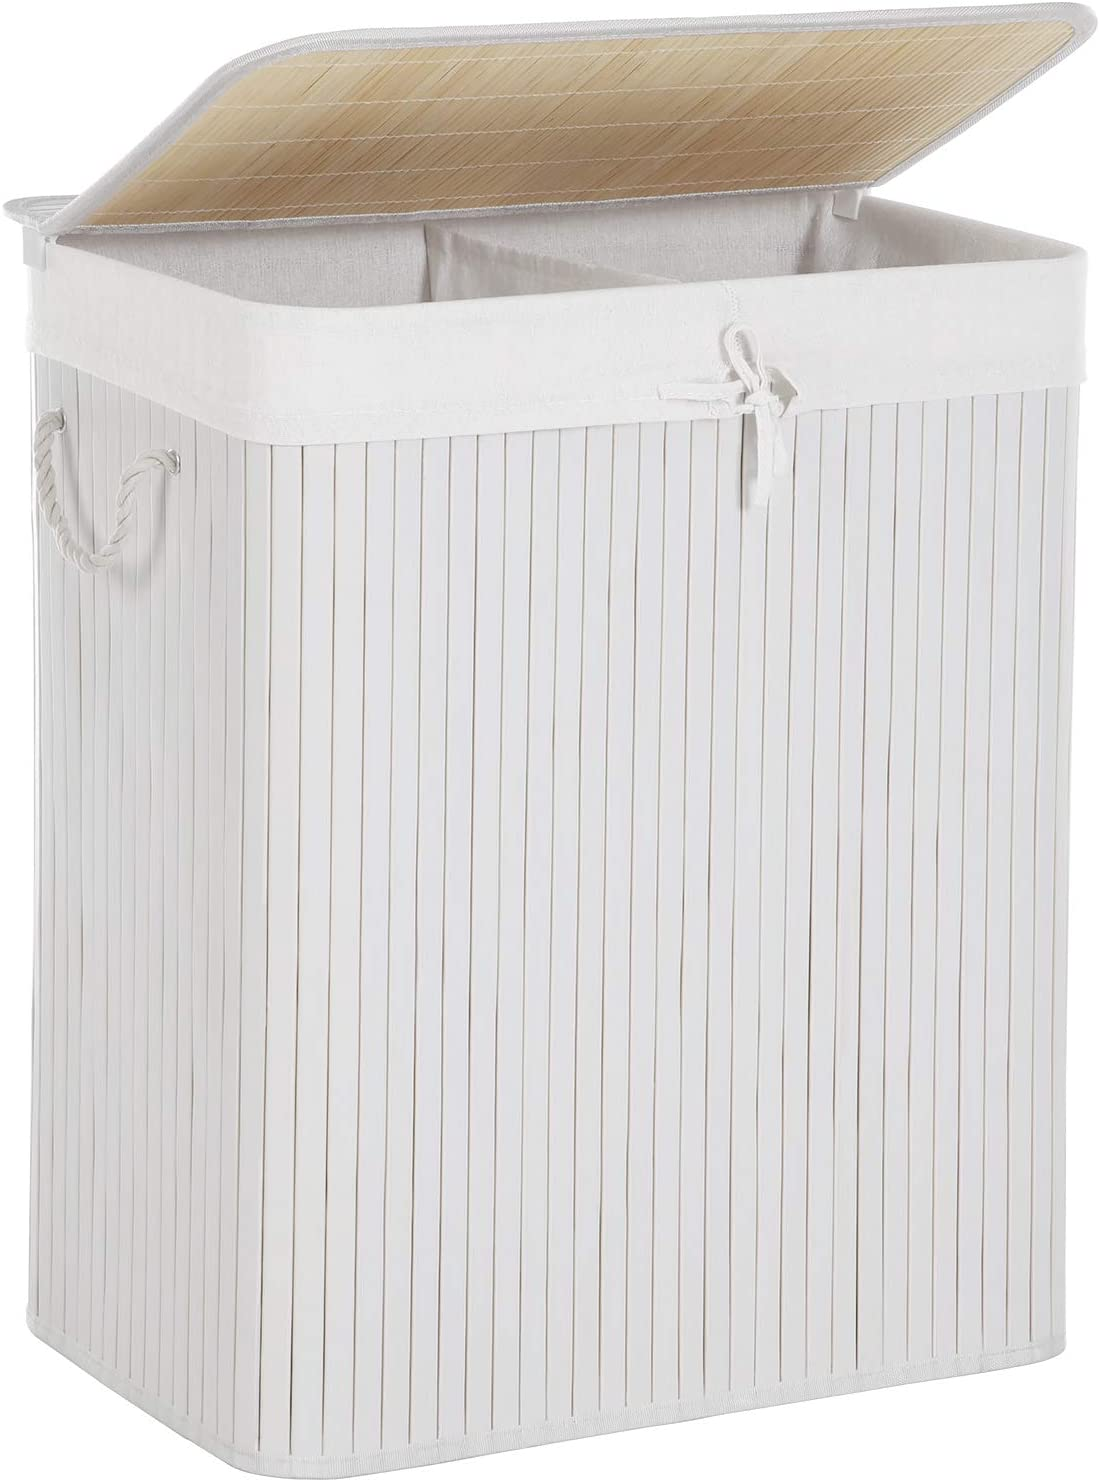 SONGMICS XXL 100 L Bamboo Laundry Basket Washing Box Bin Storage Hamper with 2 Sections Lid and Removable Washable Lining LCB64WT